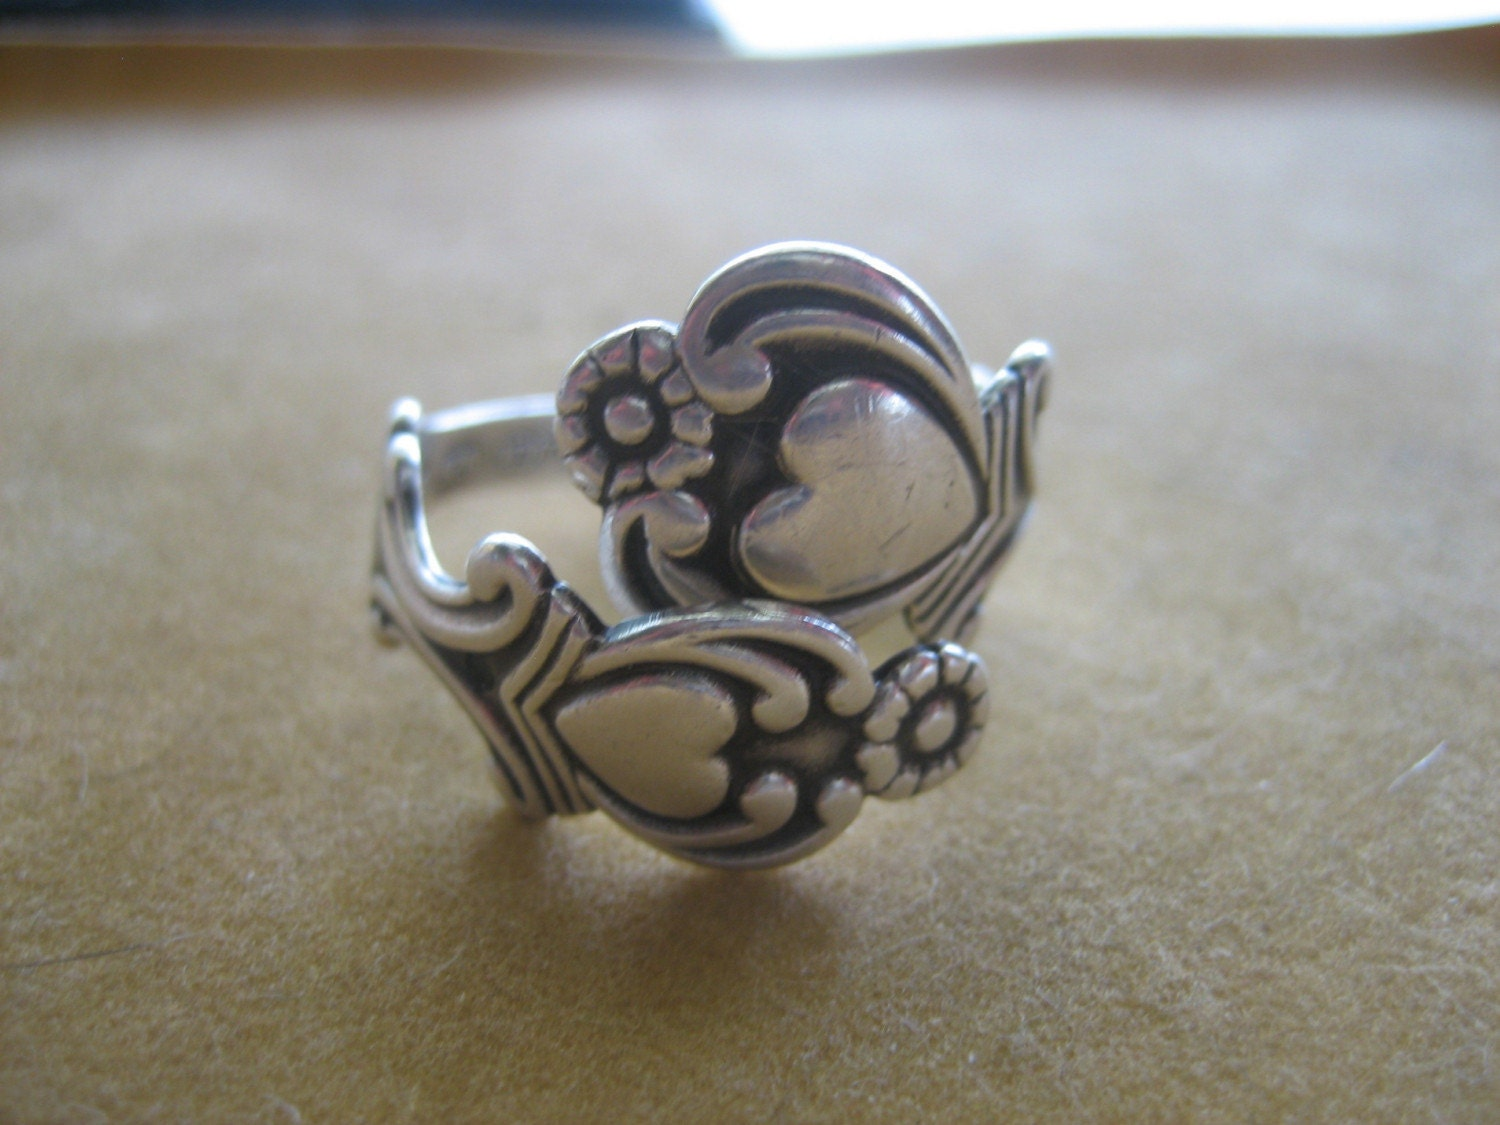 Vintage 925 Sterling Silver Avon Spoon Ring